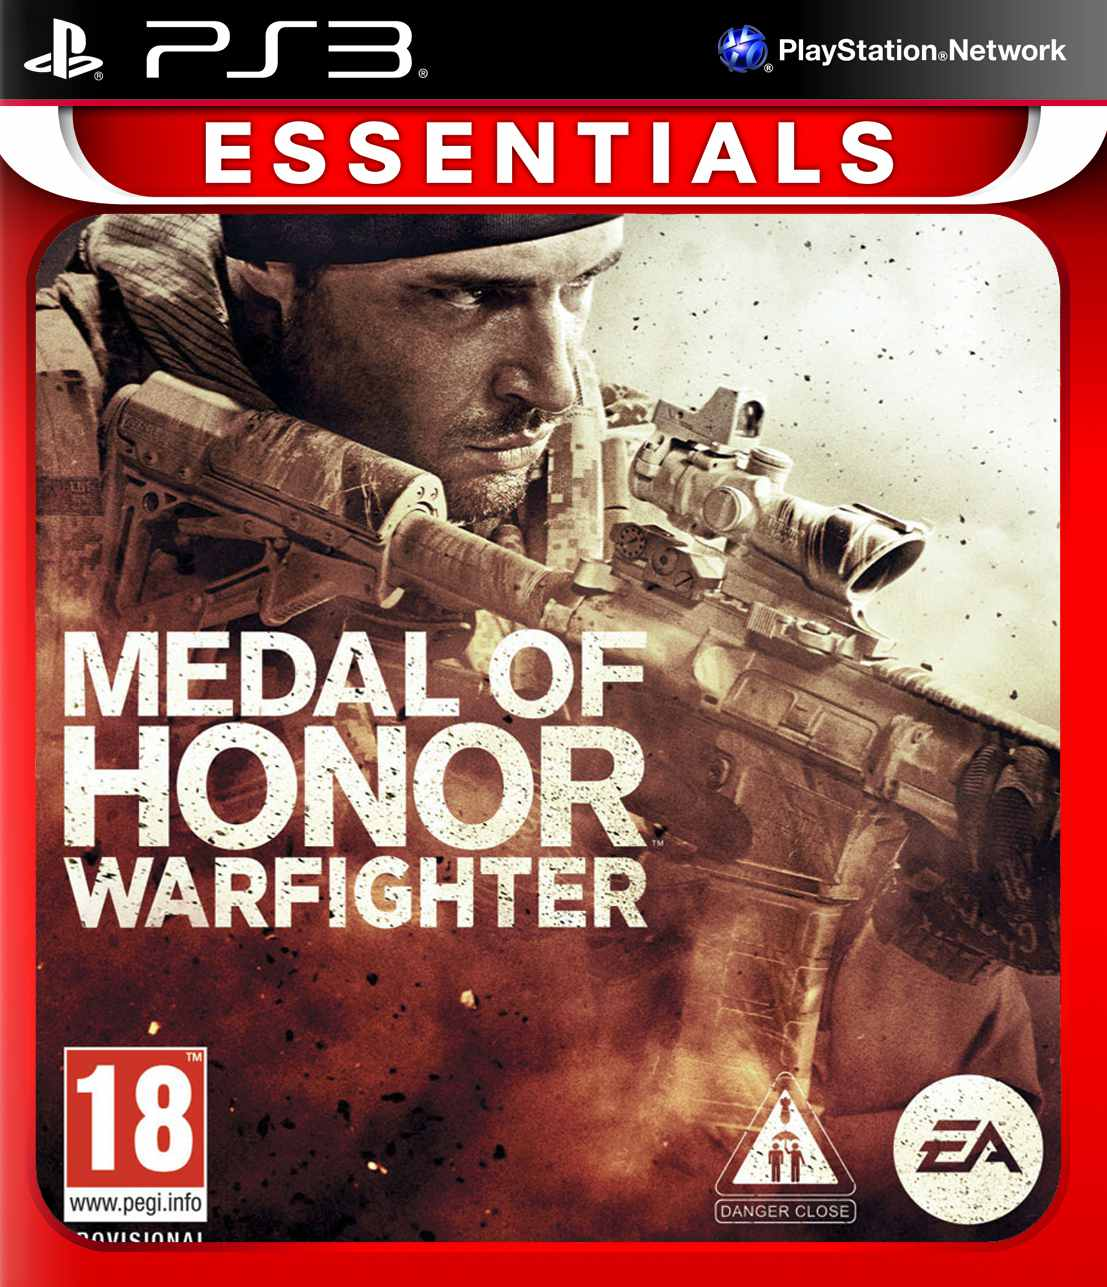 Ver Medal Of Honor Warfighter Essentials Ps3